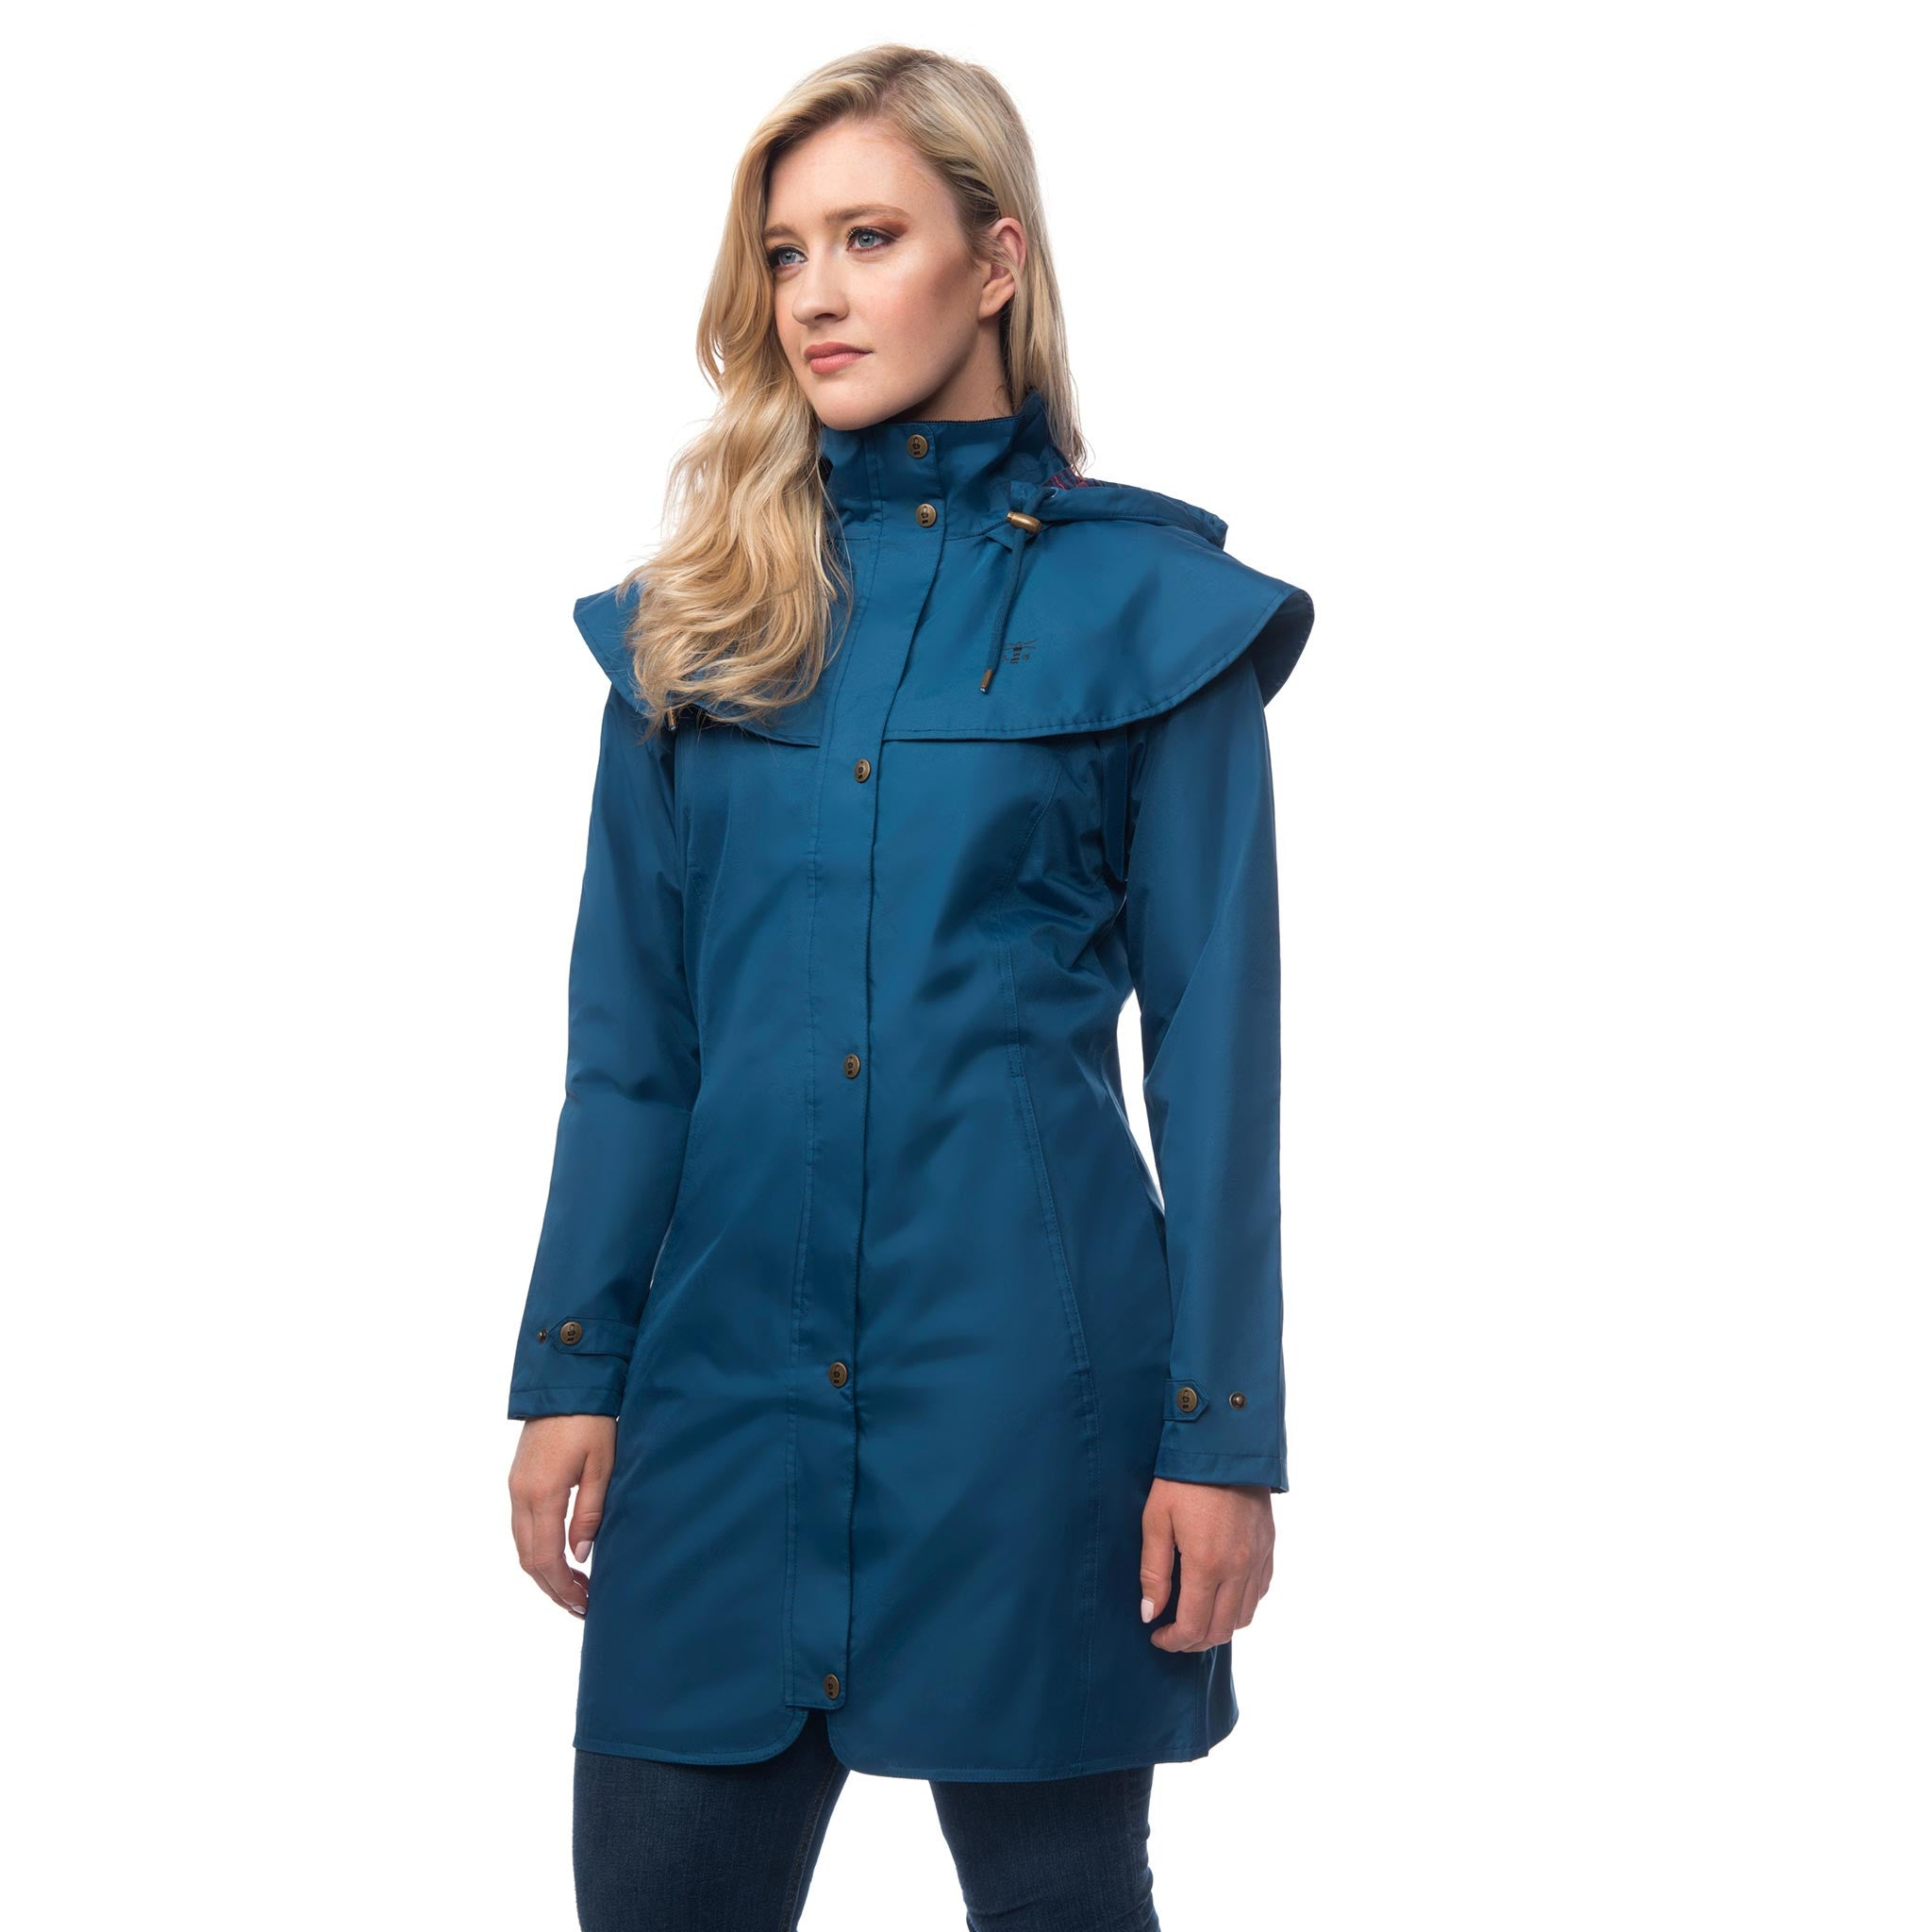 Lighthouse Womens Outrider 3/4 Length Waterproof Raincoat in Blue. Zipped & Buttoned.